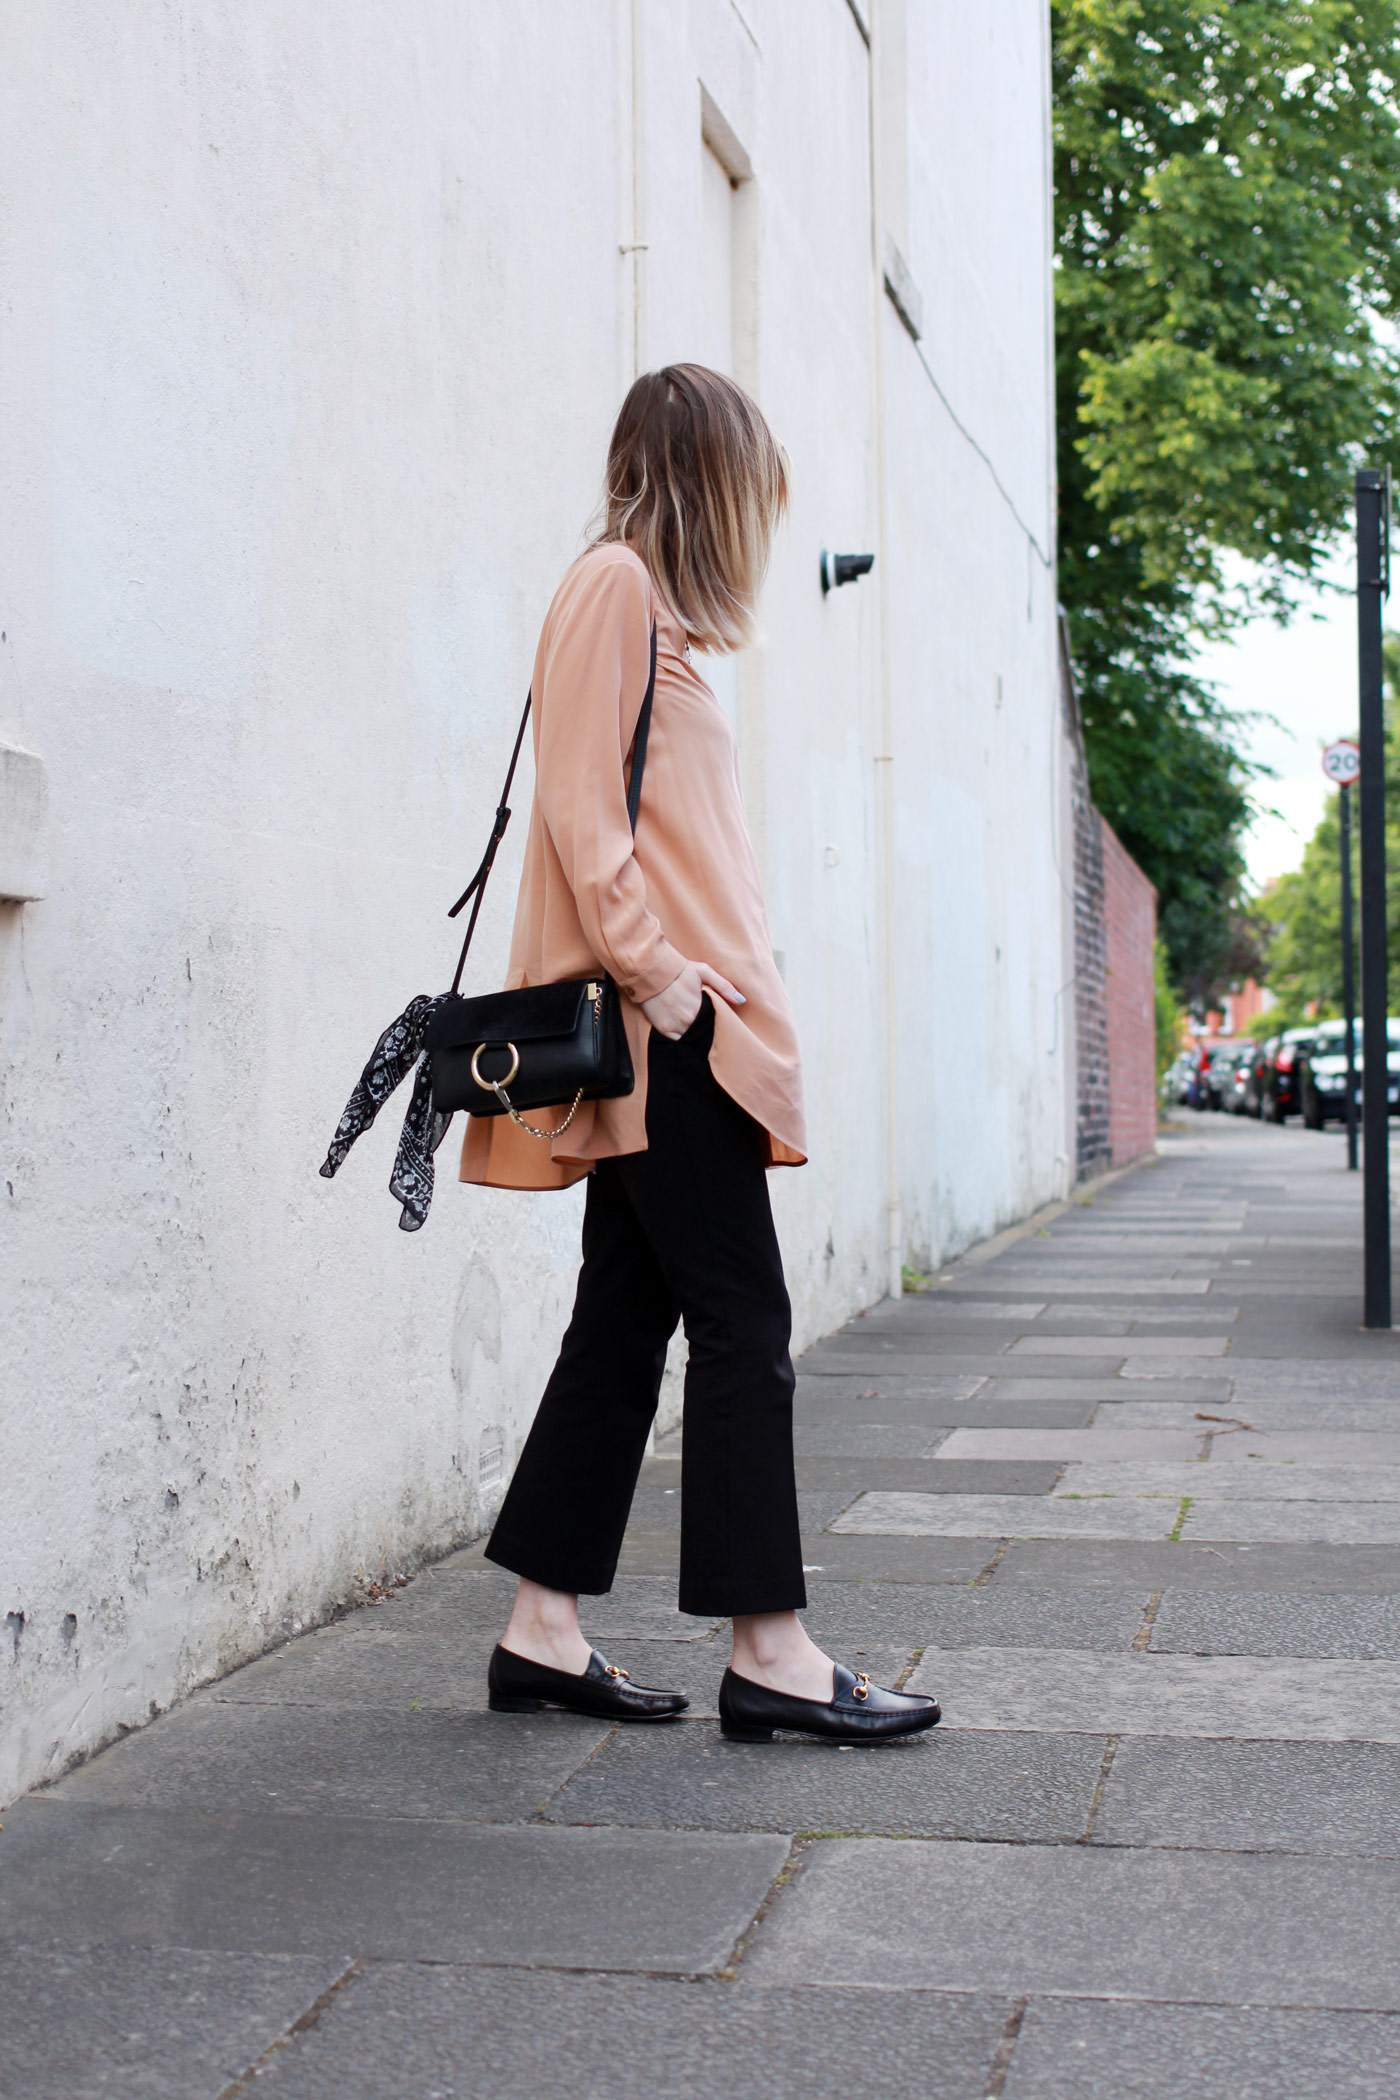 Boden-flared-trousers-COS-peach-shirt-Chloe-faye-bag-black-gucci-loafers-1